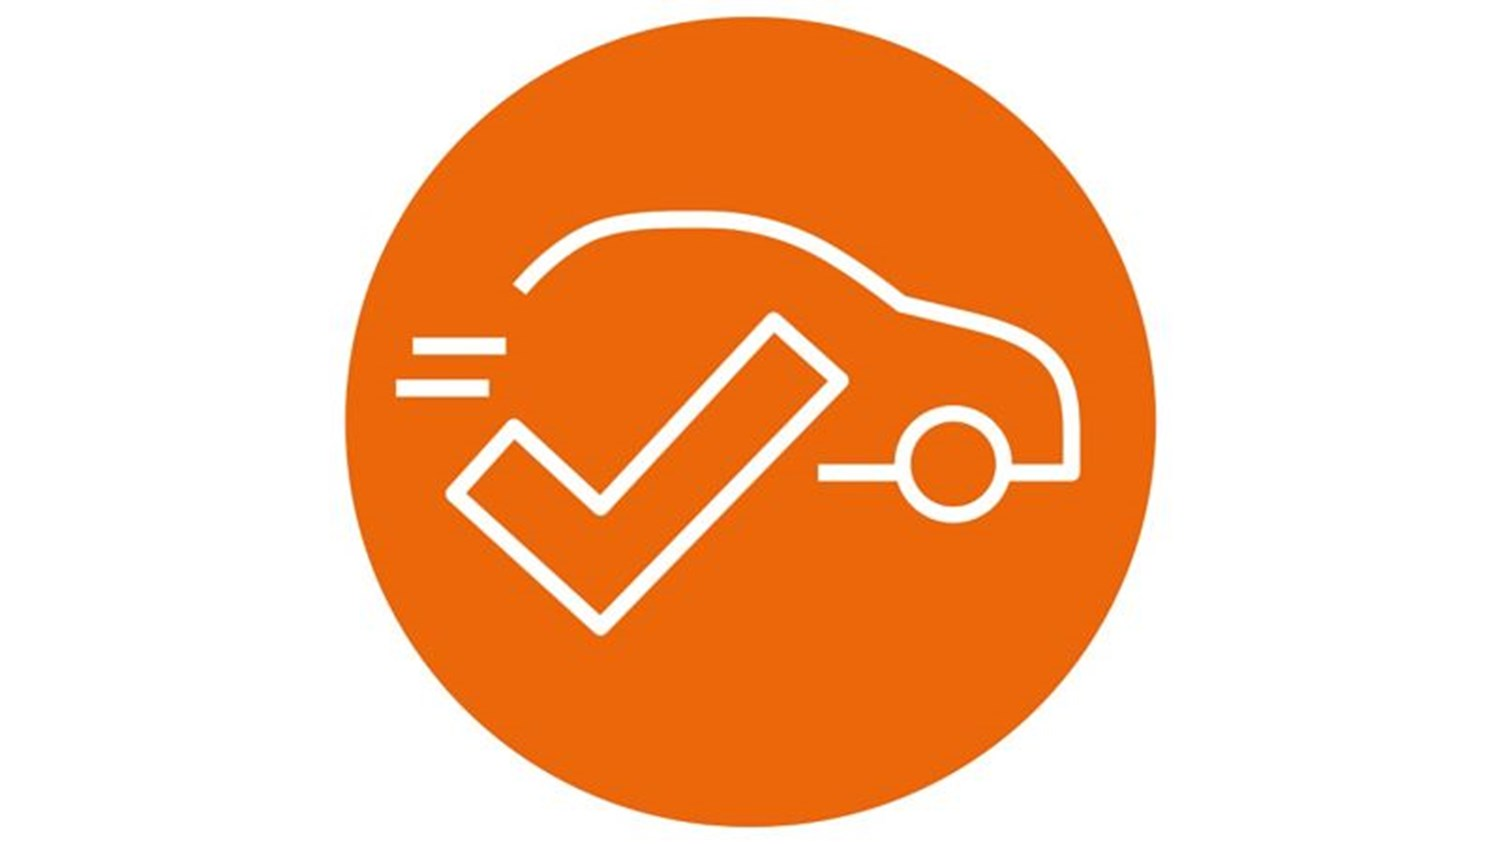 orange circle with white icon of a car with a tick